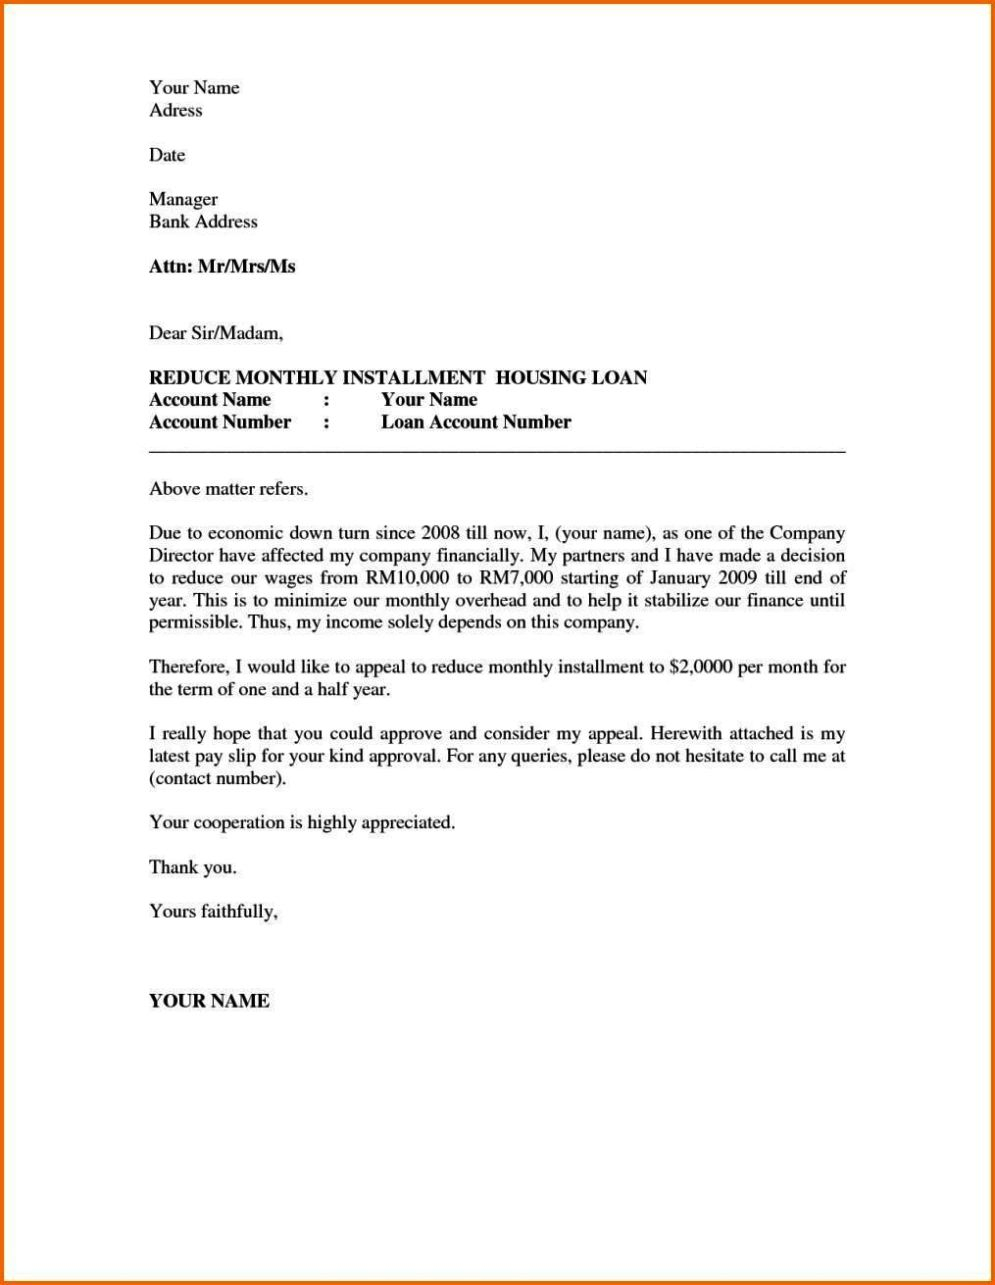 Housing-Appeal-Letter Template Appeal Letters For Housing on job letter for housing, acceptance letter for housing, cover letter for housing, request letter for housing, dispute letter for housing, application letter for housing, petition letter for housing, recommendation letter for housing,